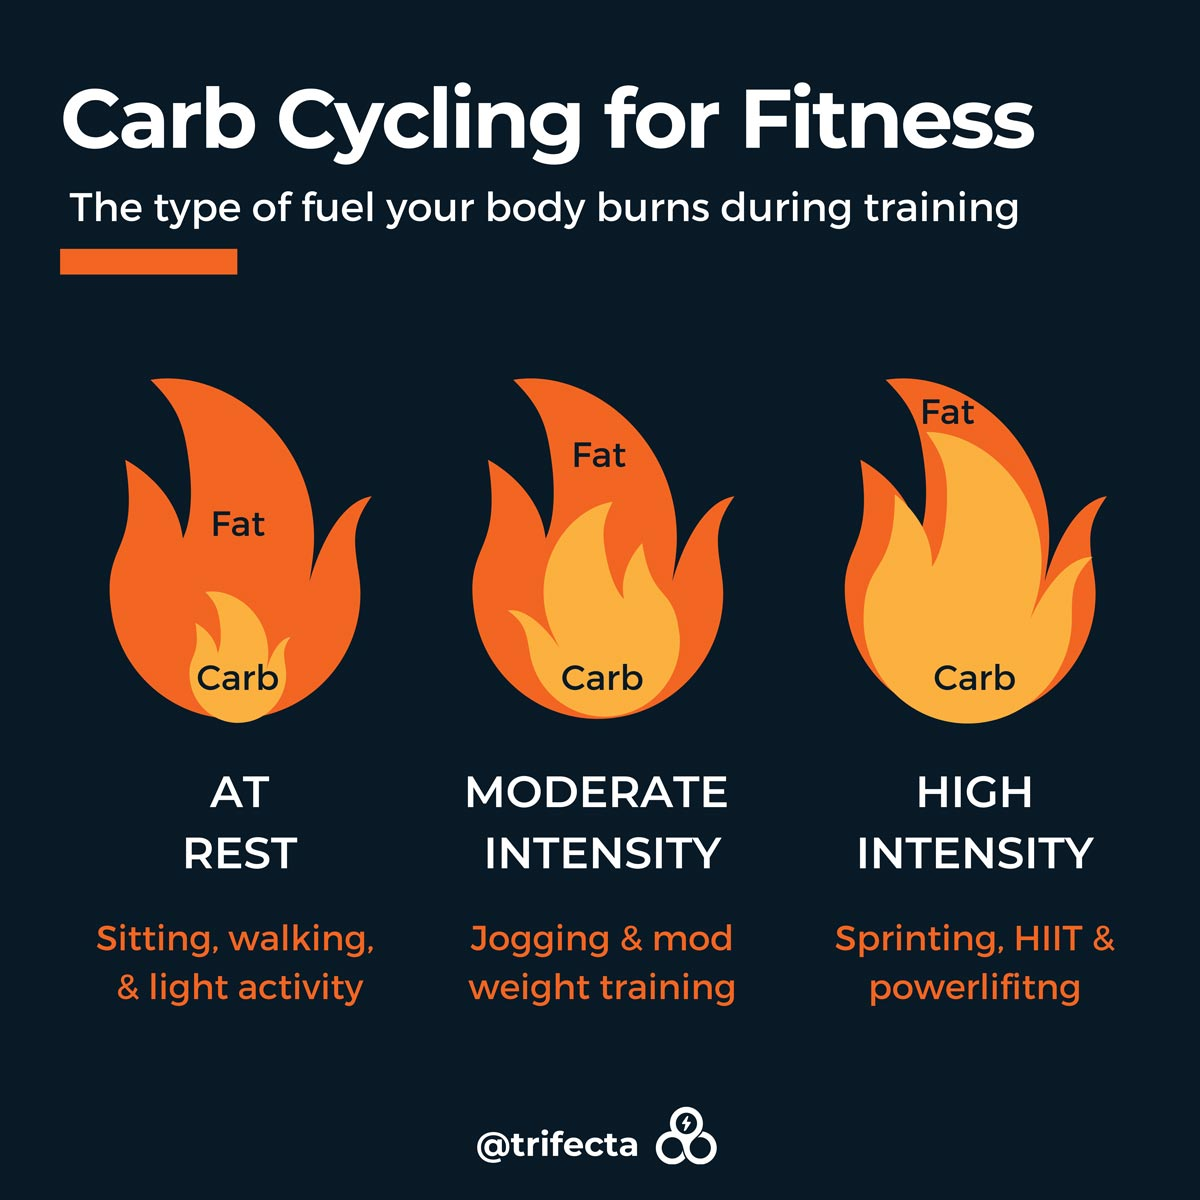 carb cycling for fitness